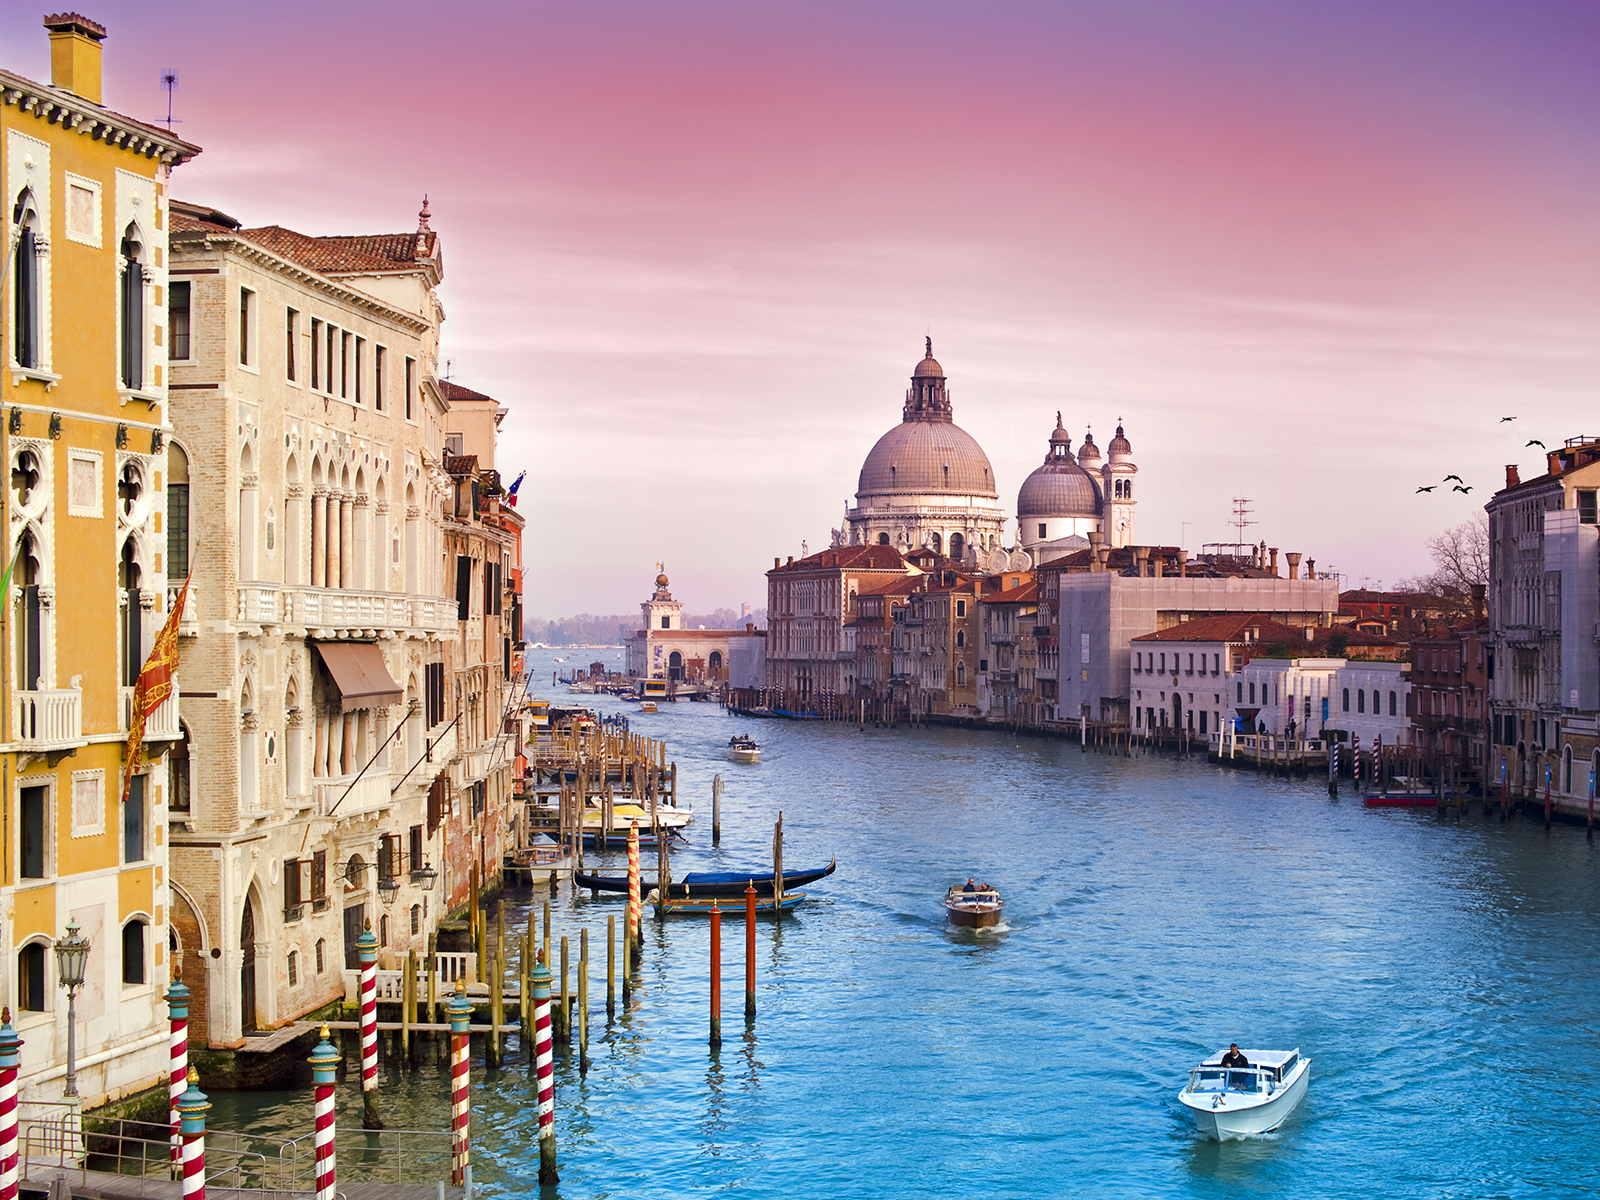 Amazing Cityscape Wallpapers 23venividivenice1600x12